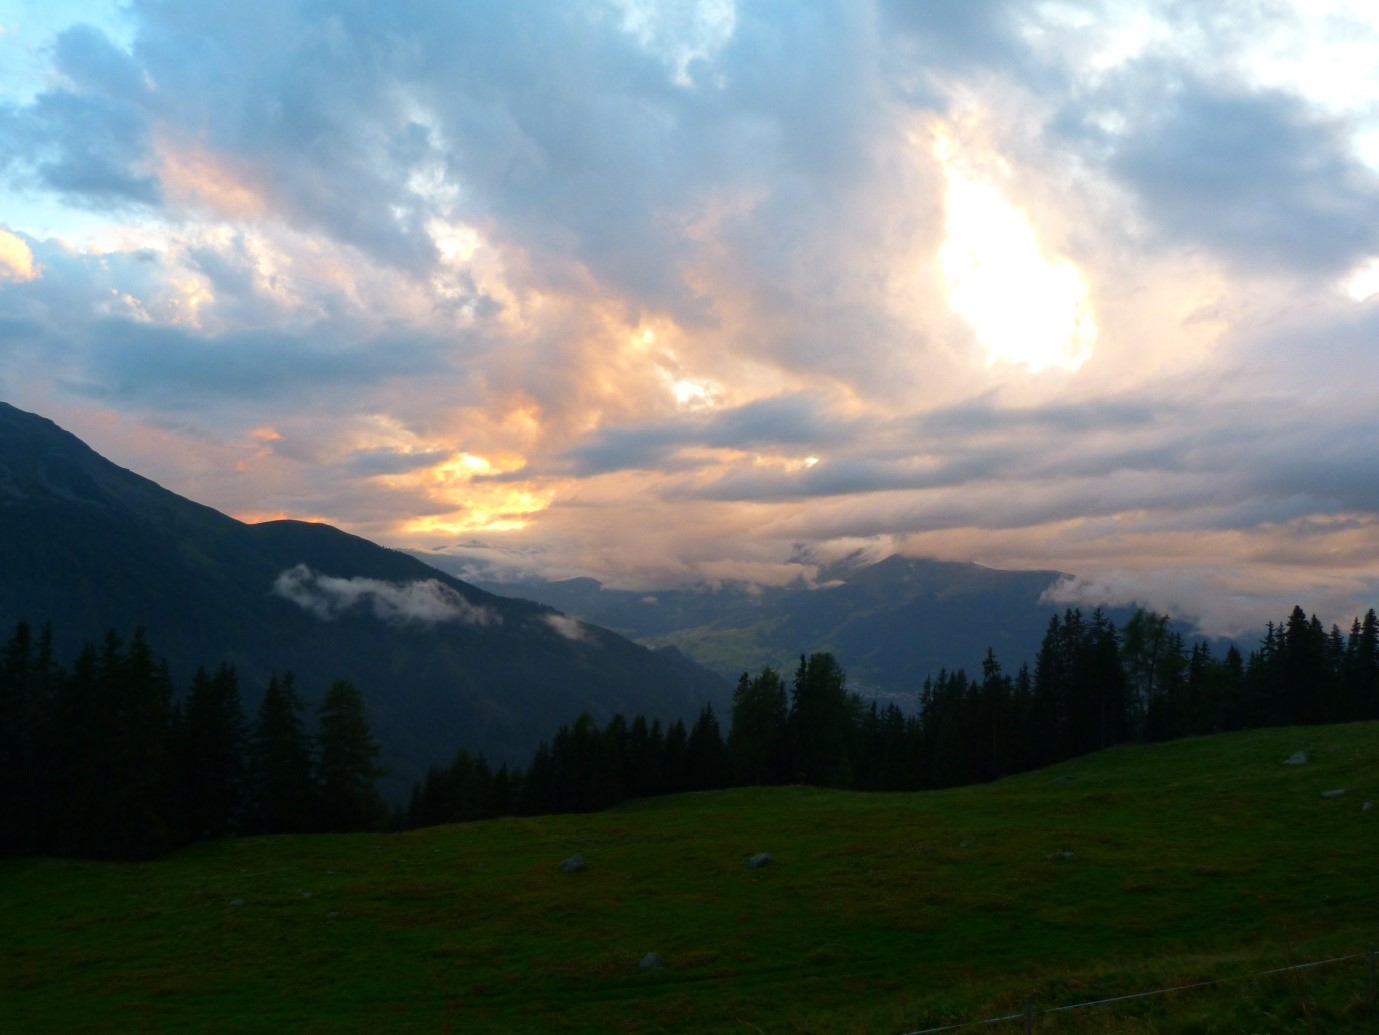 Sunset view over the Alps from Falkaunsalm, an Alpine hut outside Feichten (Image credit: Ciara Fleming).